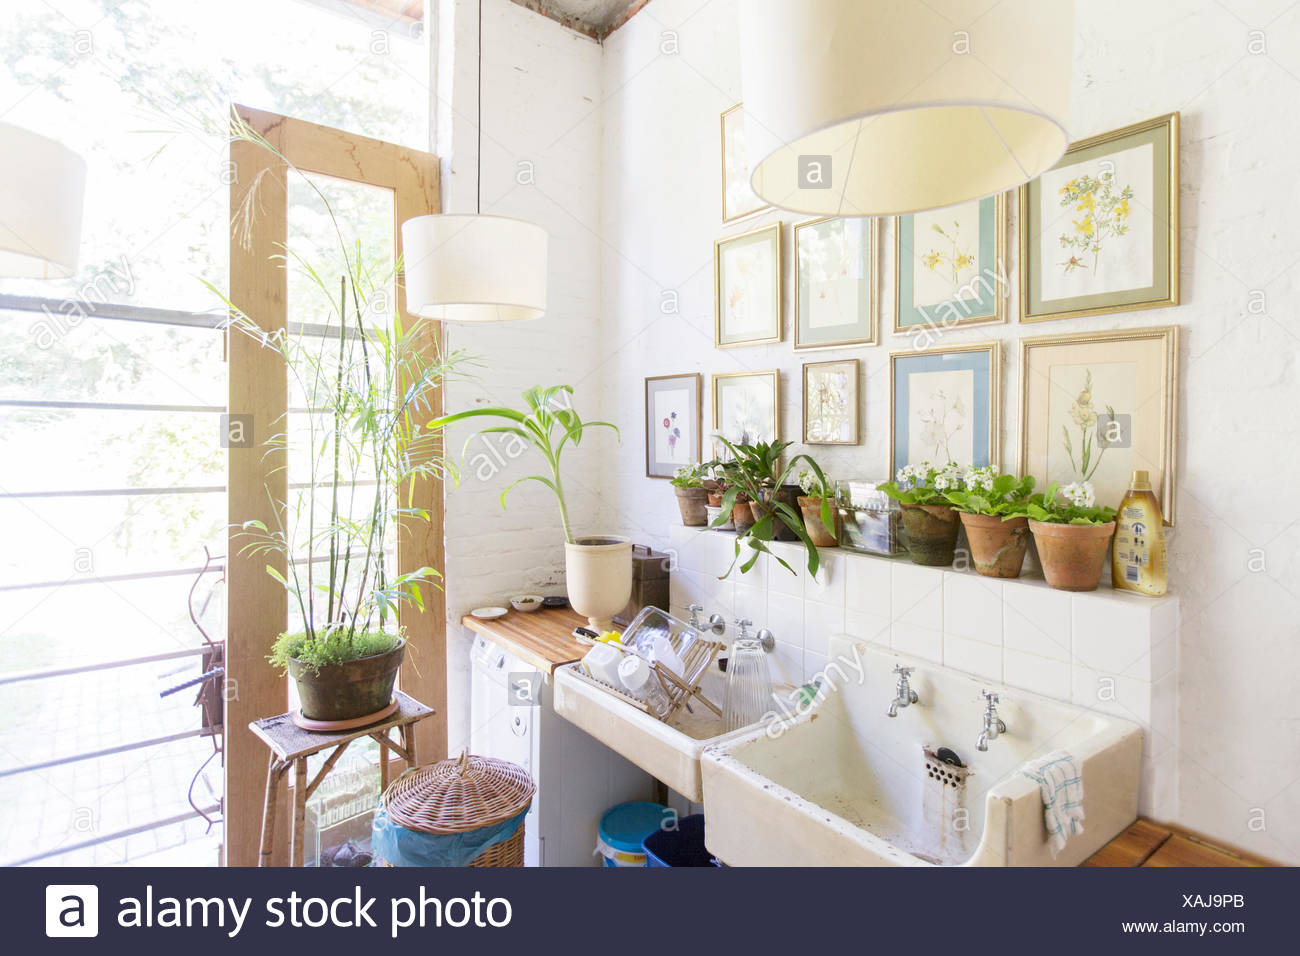 Wall Hangings And Lights Over Rustic Kitchen Sink